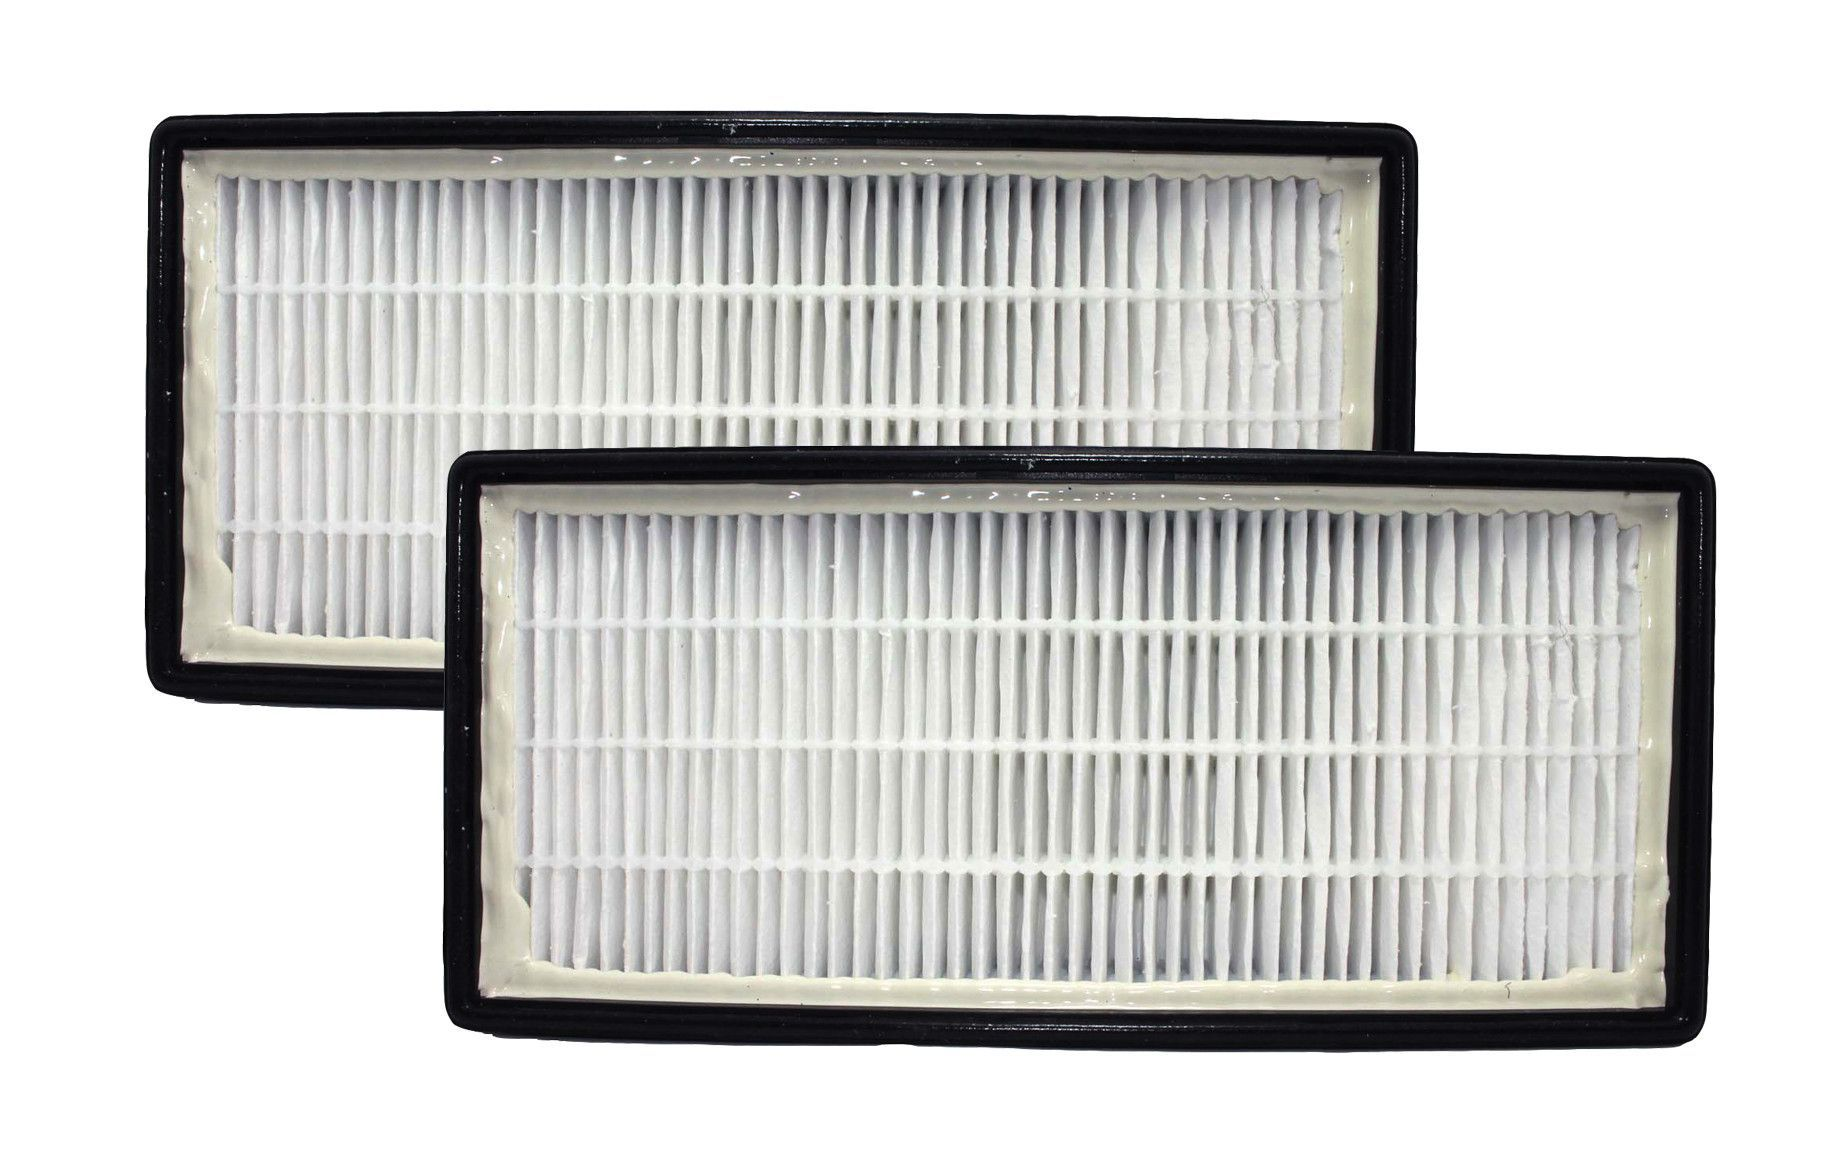 2 Air Filters Designed for select Holmes, Honeywell, Vicks